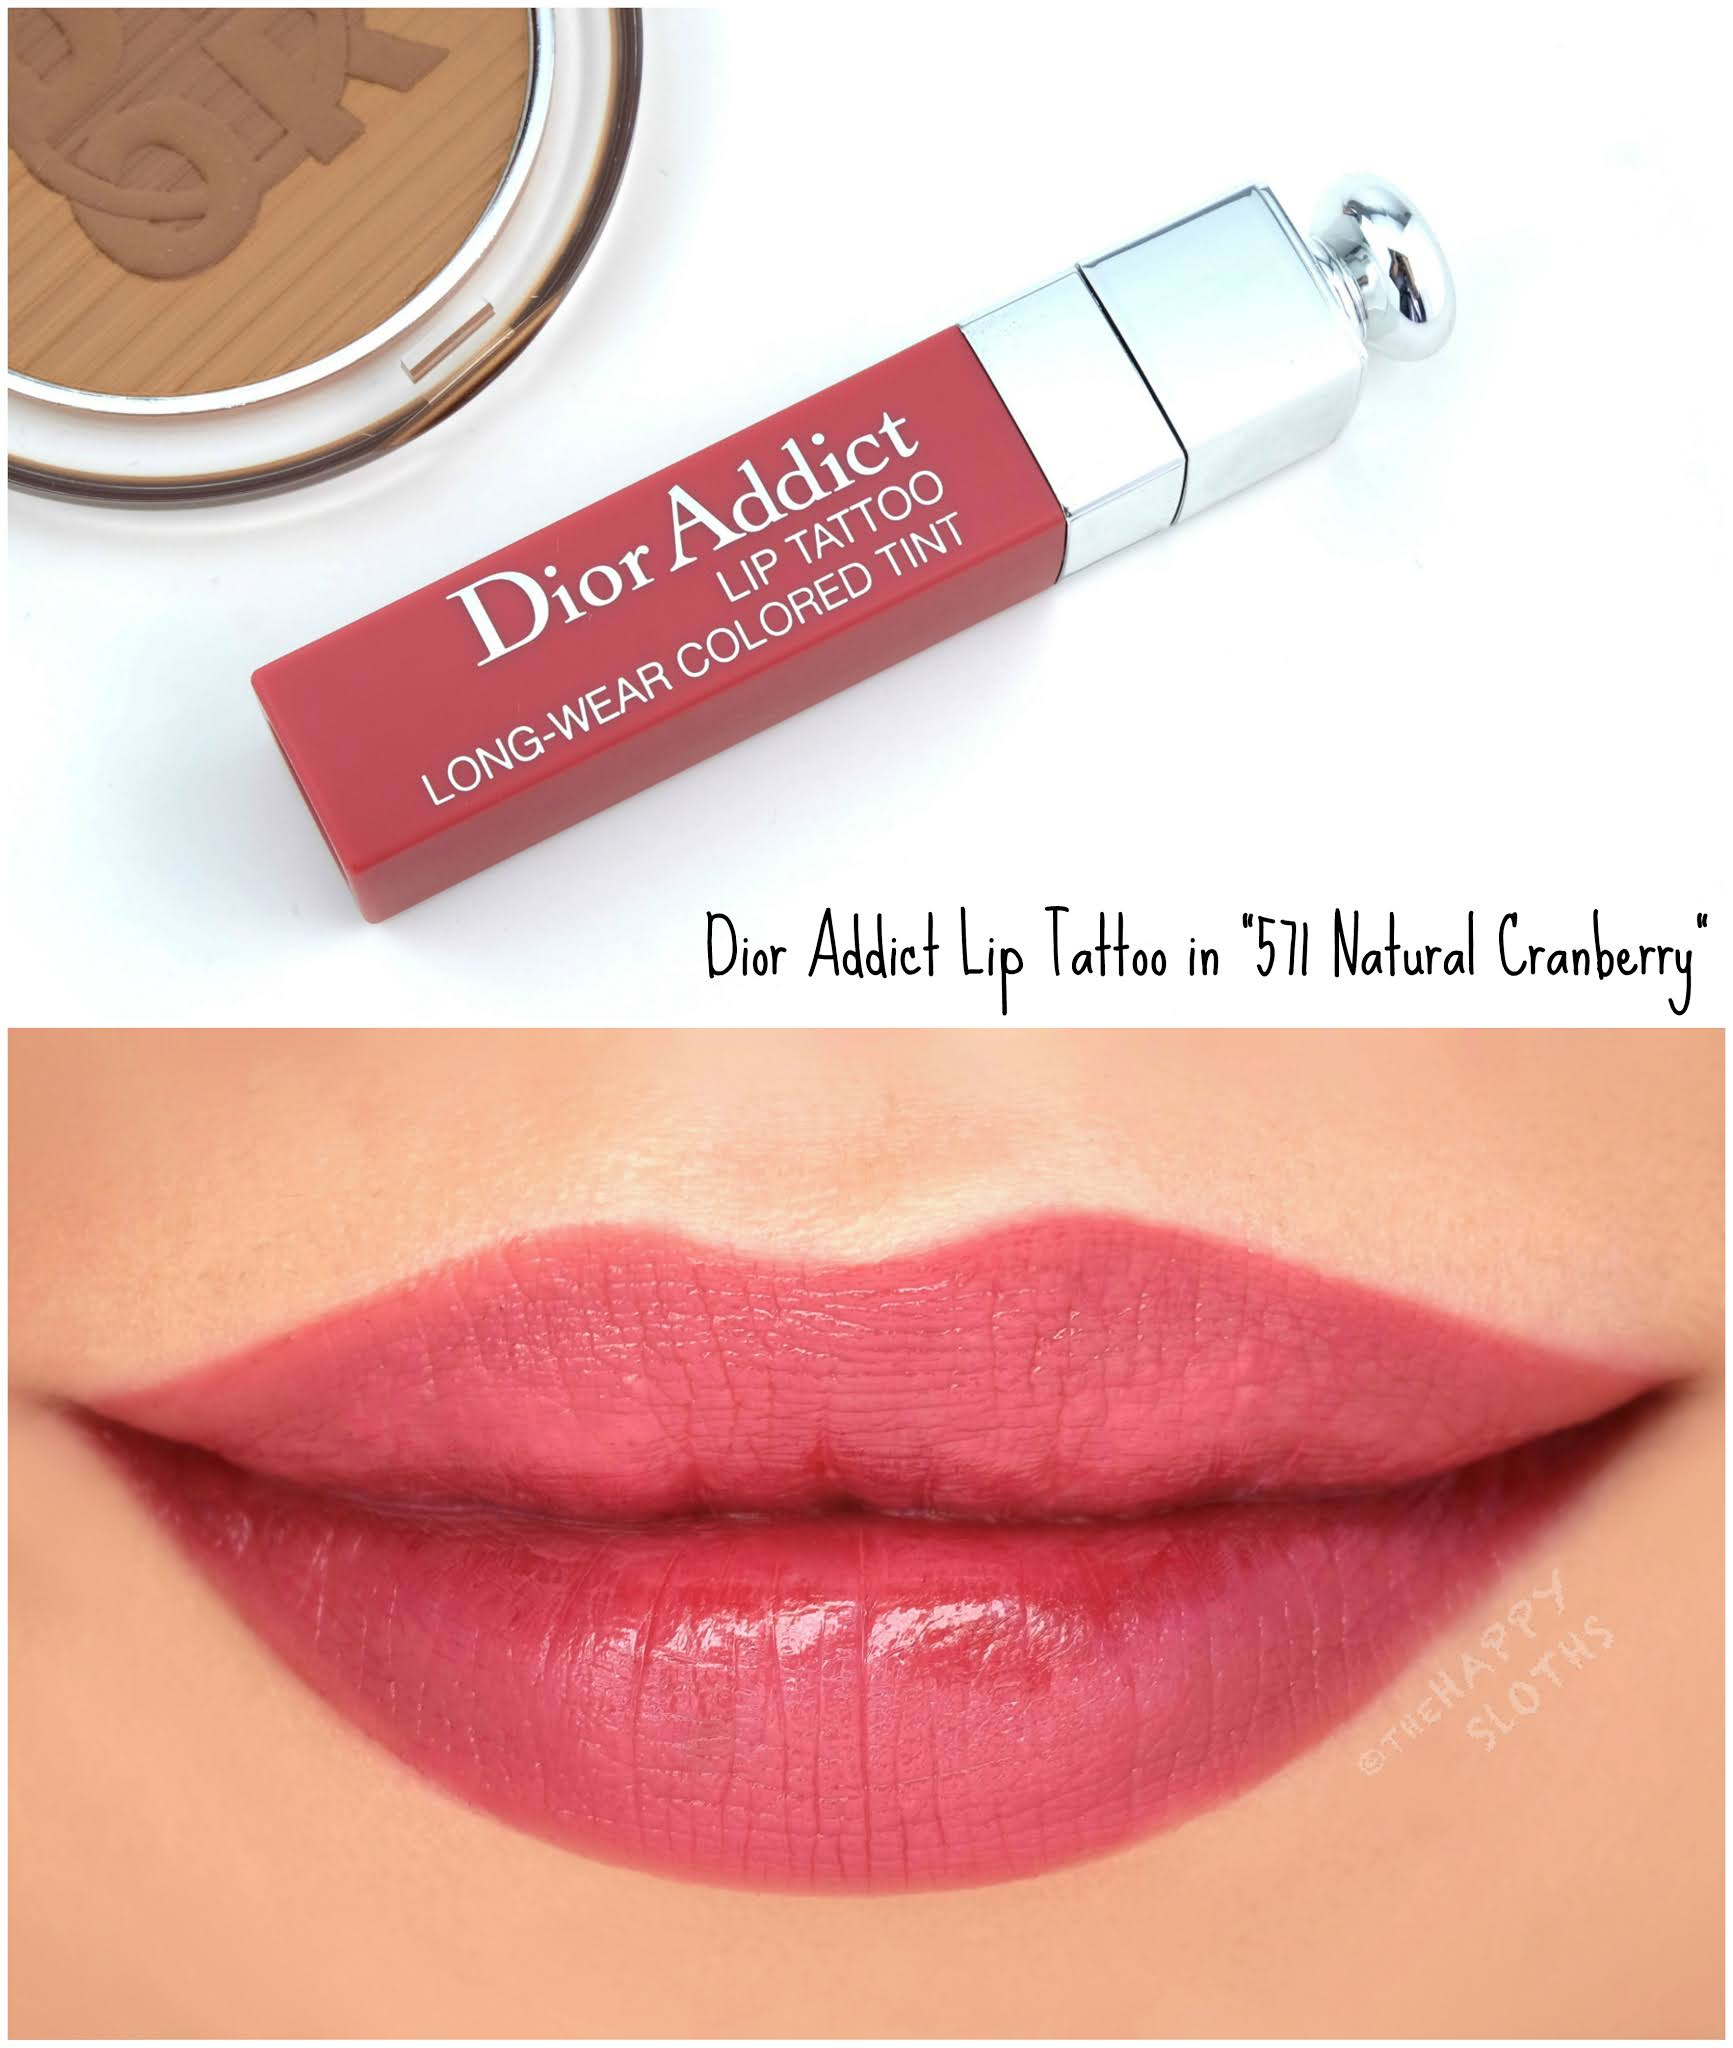 "Dior Summer 2020 | Dior Addict Lip Tattoo in ""571 Natural Cranberry"": Review and Swatches"